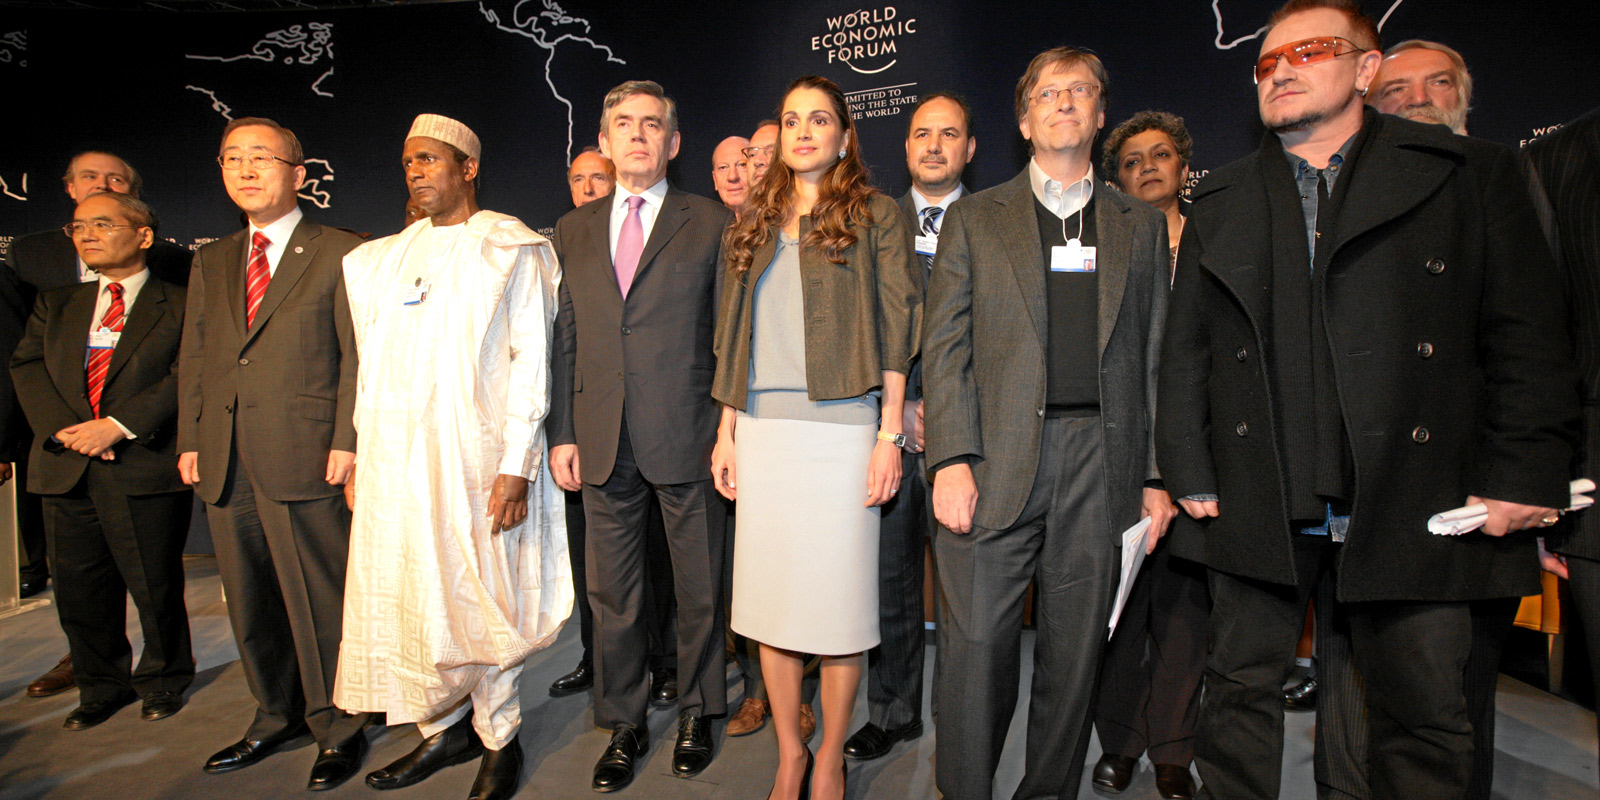 World Economic Forum participants stand together to 'Call to Action on the Millenium Development Goals' during the Annual Meeting 2008 in Davos, Switzerland, January 25, 2008.